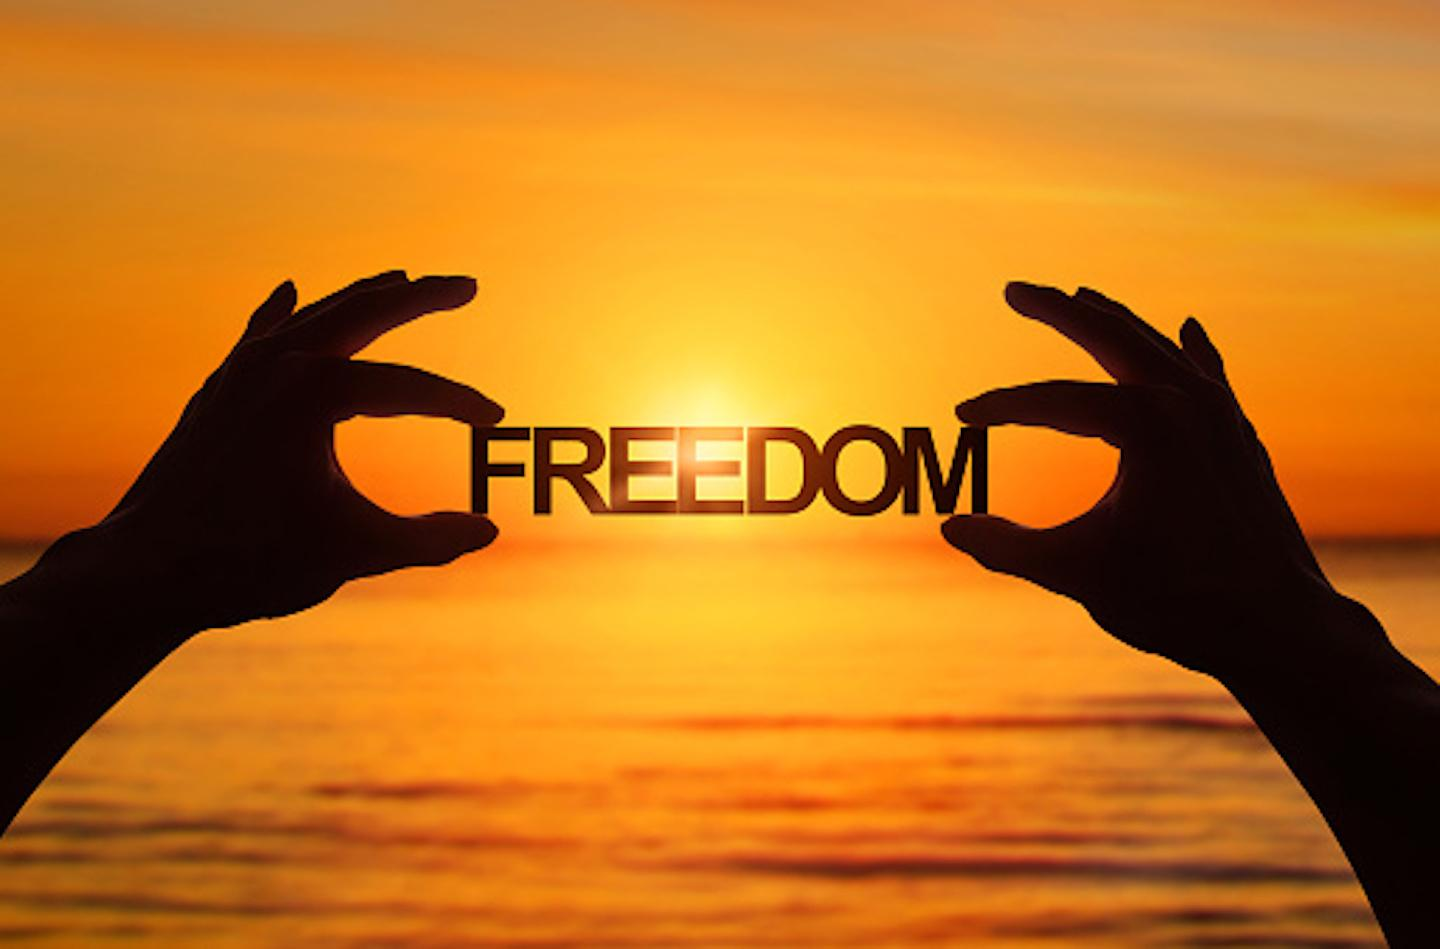 Freedom Picture The Gift Of Freedom The Roar